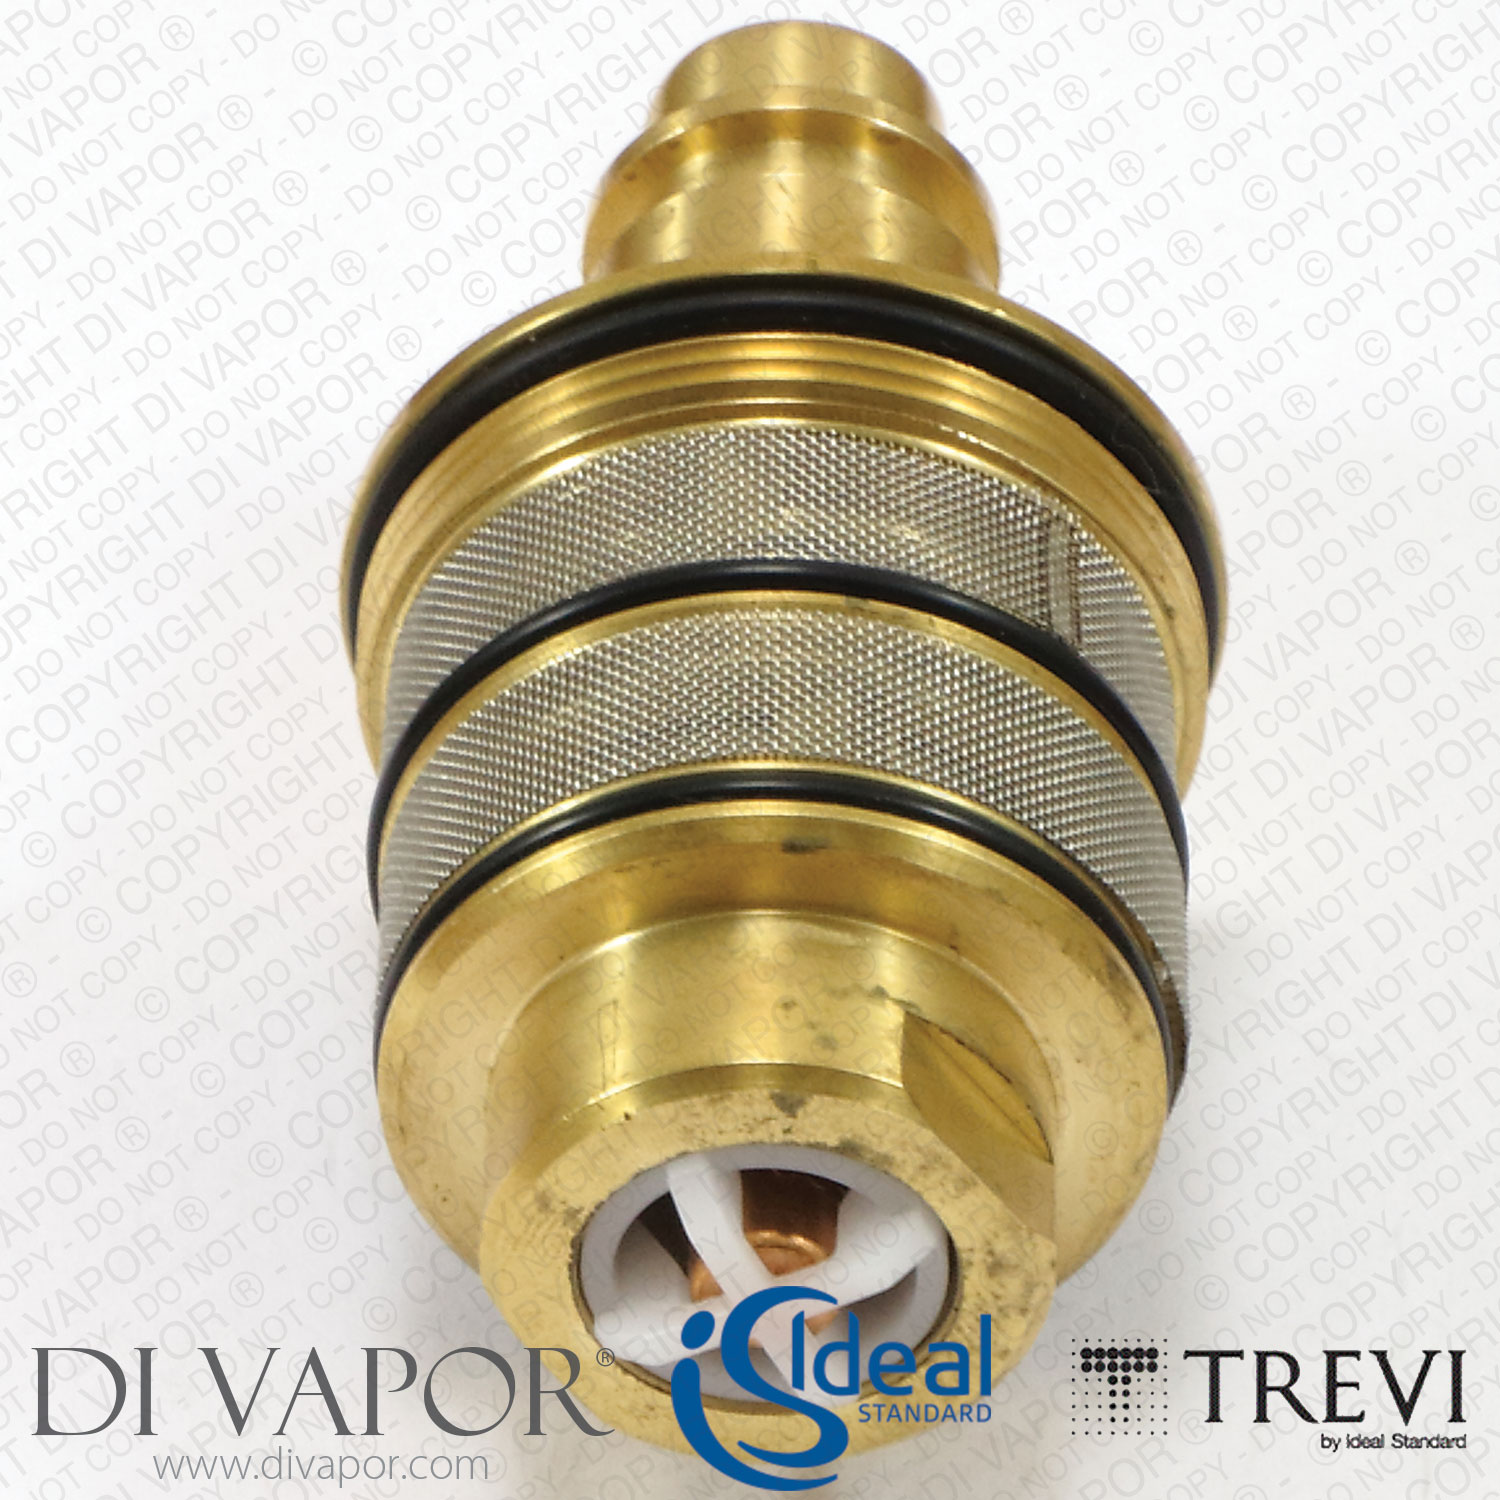 A963068aa Ideal Standard Trevi Therm 300 Thermostatic